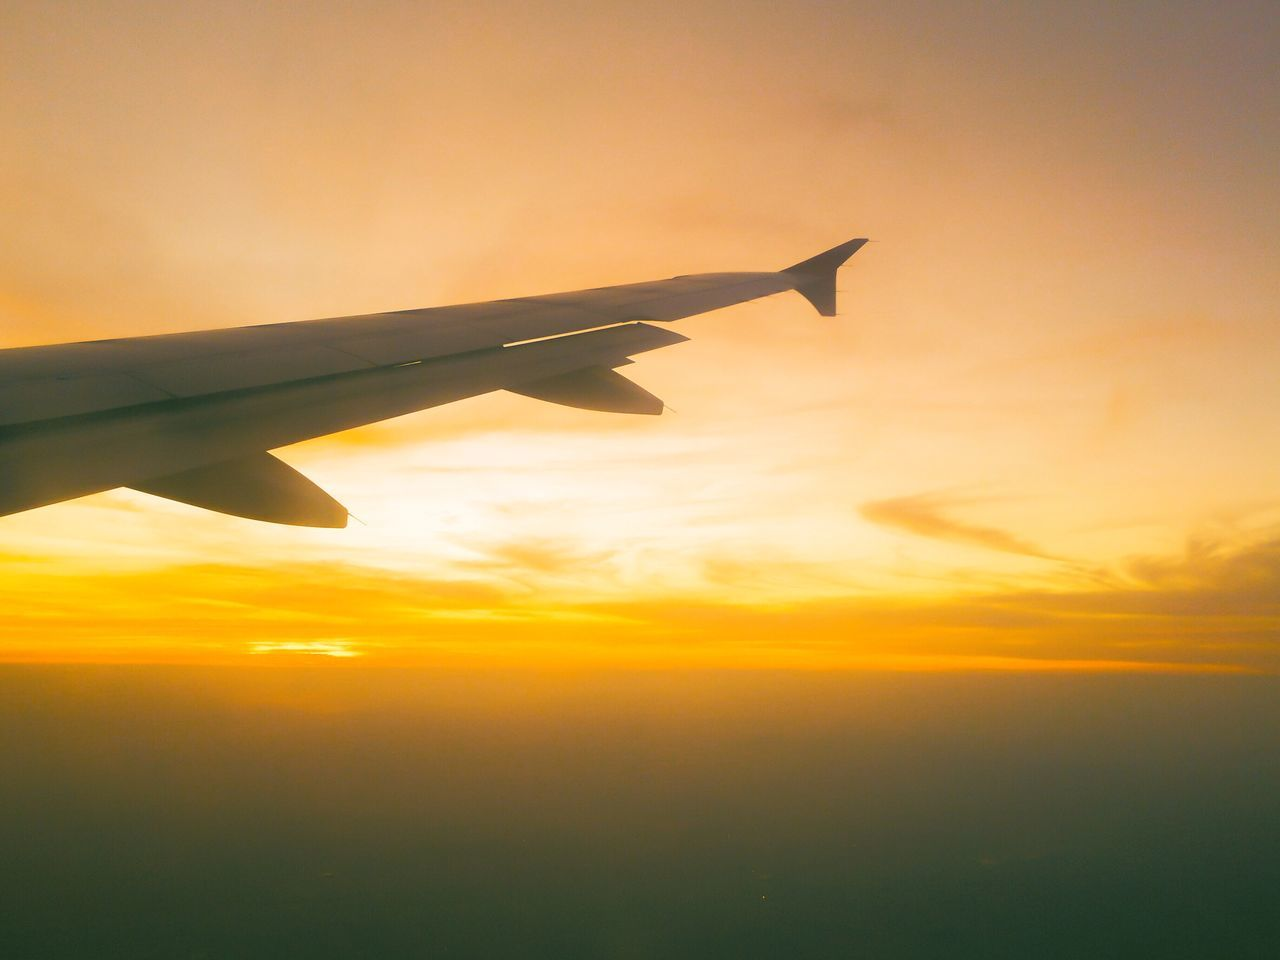 Airplane Transportation Journey Sunset Sky Flying Travel Aircraft Wing Airplane Wing Aeroplane Nature No People Plane Beauty In Nature Cloud - Sky Aircraft Mode Of Transport Air Vehicle Outdoors Day